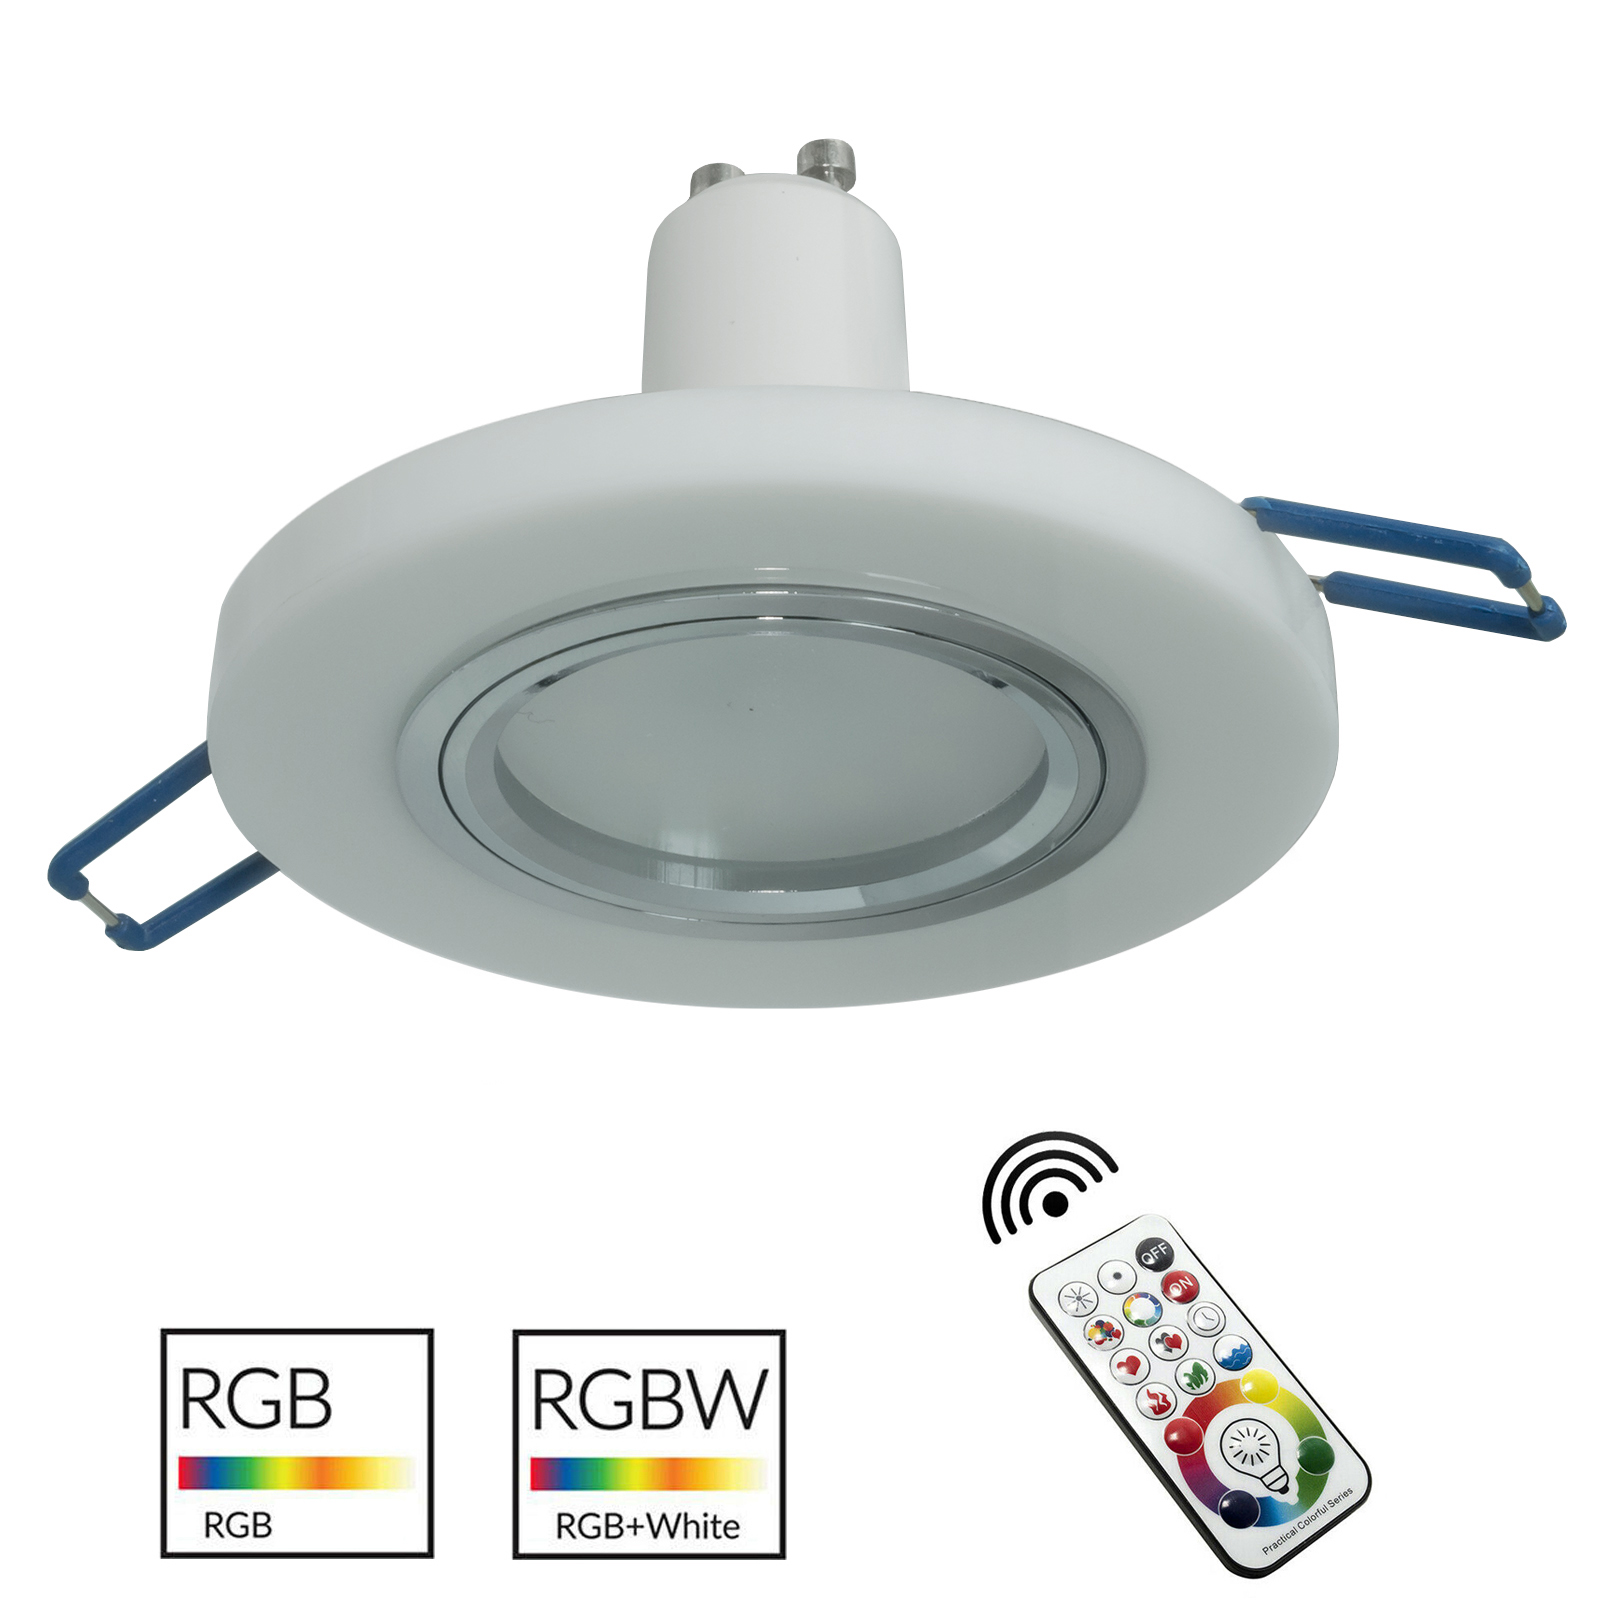 Spotlight recessed round 6cm modern white glass LED GU10 RGB light colorful shops